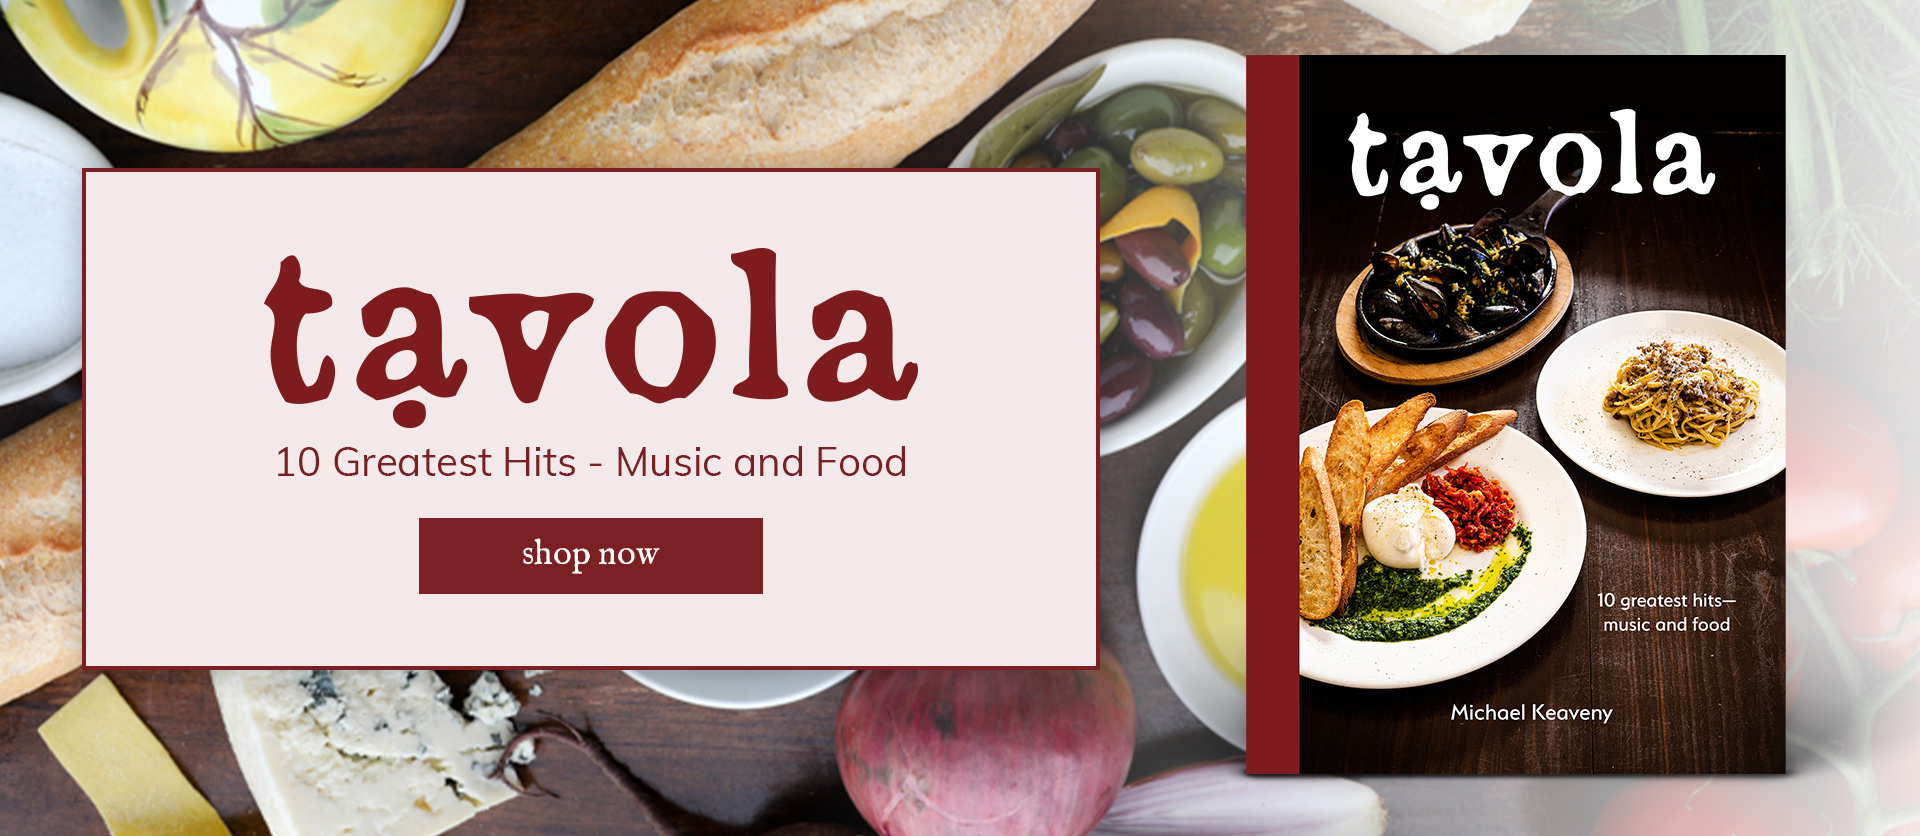 tavola 10 greatest hits - music and food